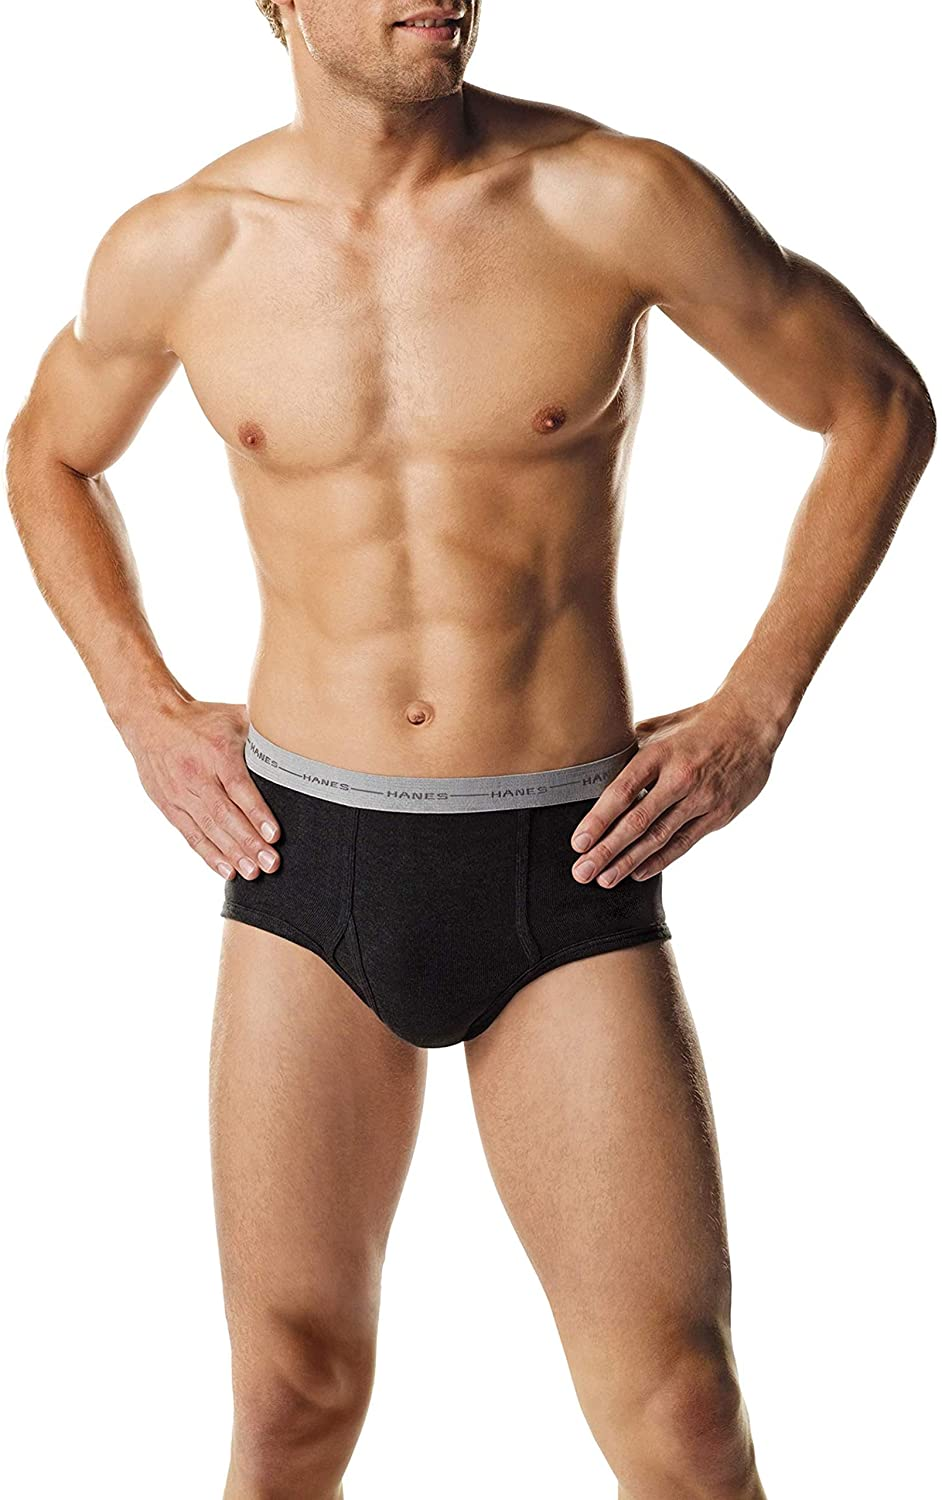 Hanes Special Campaign Men's Cotton Briefs Cool Styling 5-Pack Mid-Rise Sport 2021 Dri